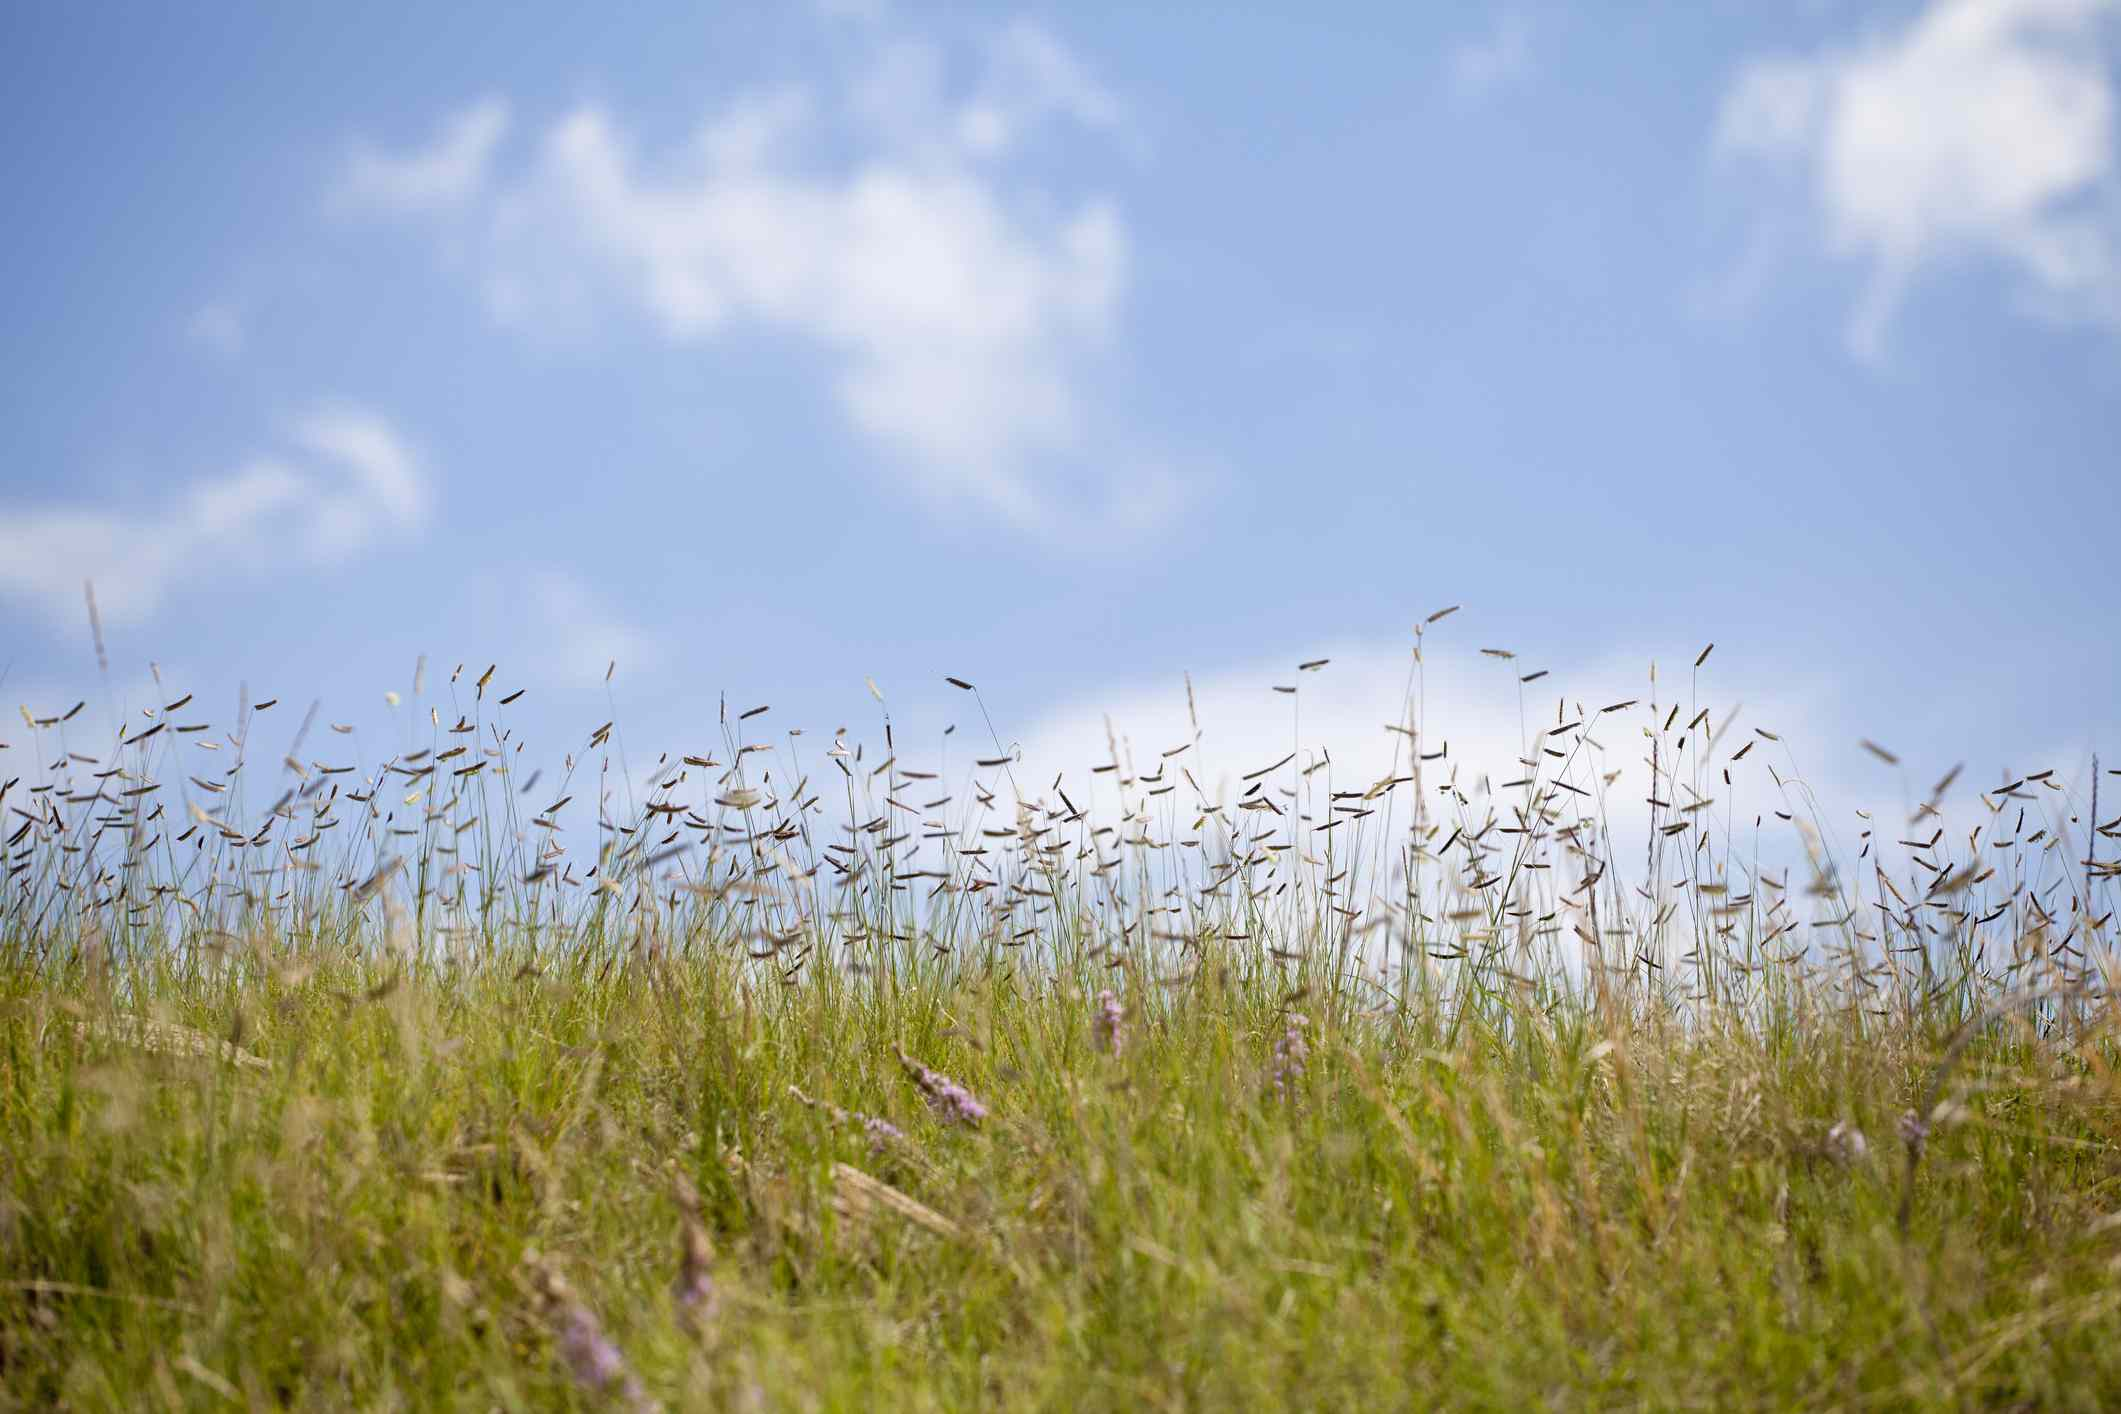 A patch of unmowed grass against a blue sky